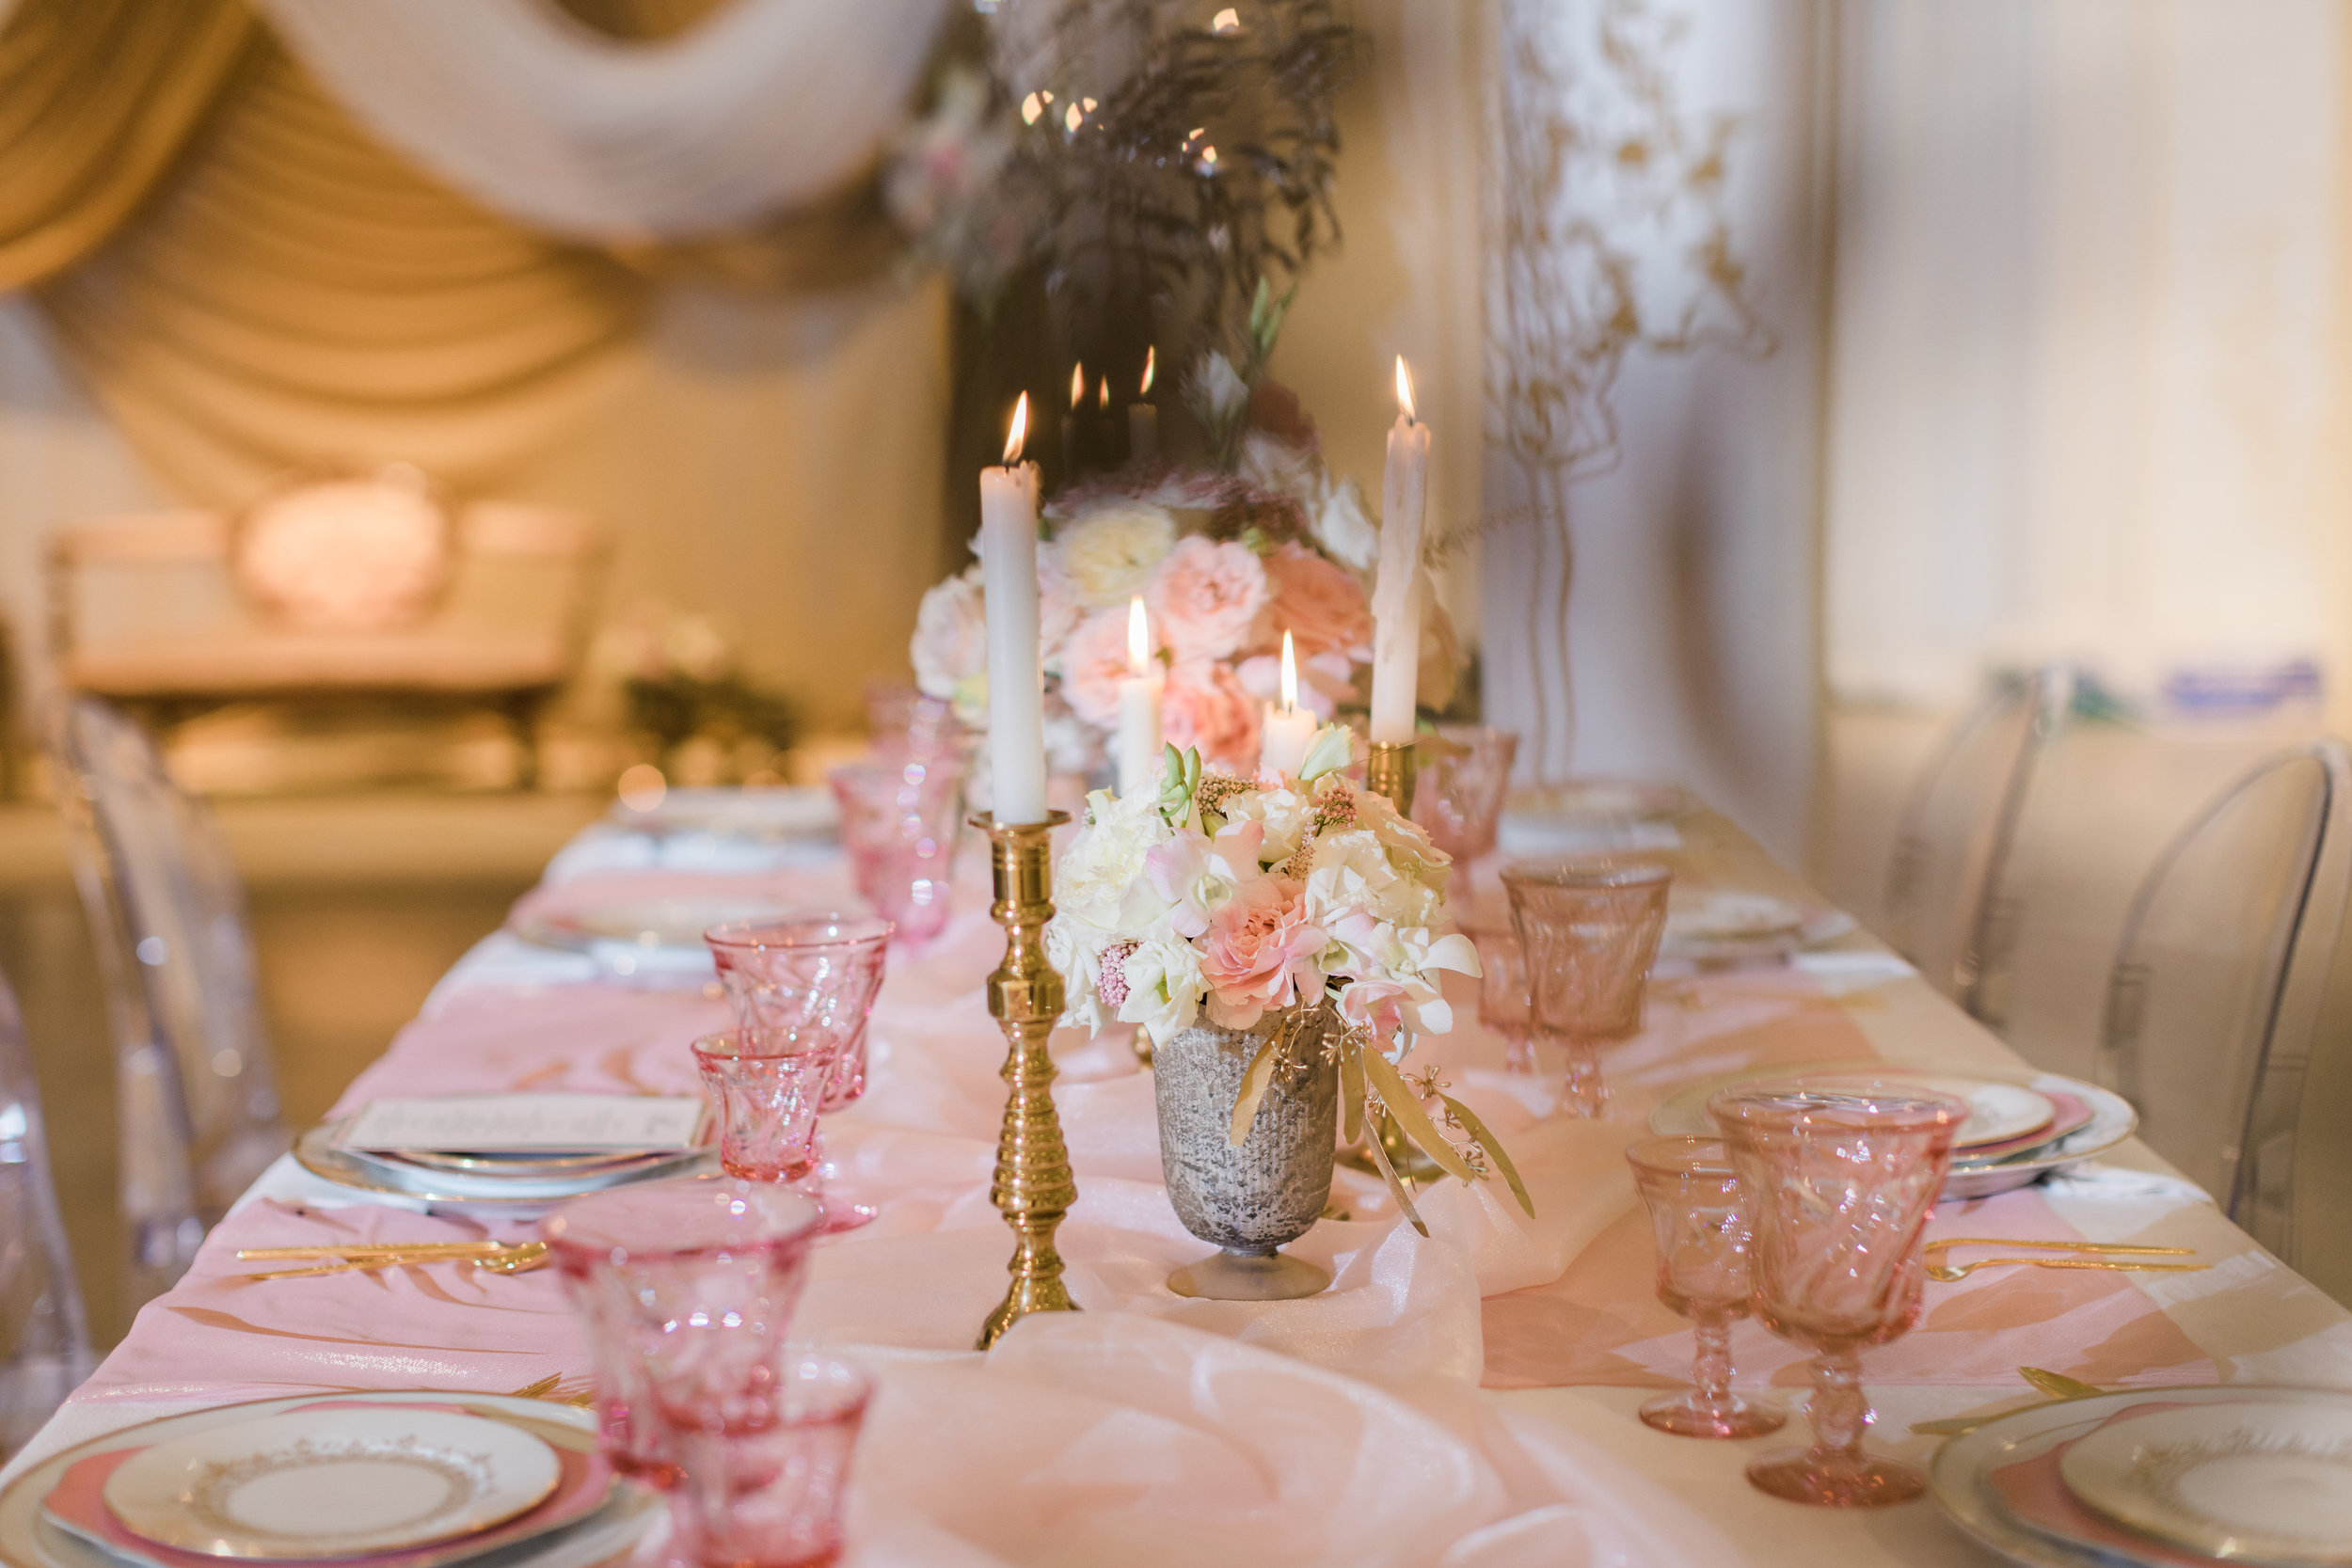 Wedding at the Chez Chicago Venue | Your Day by MK | Chicago Wedding Planner